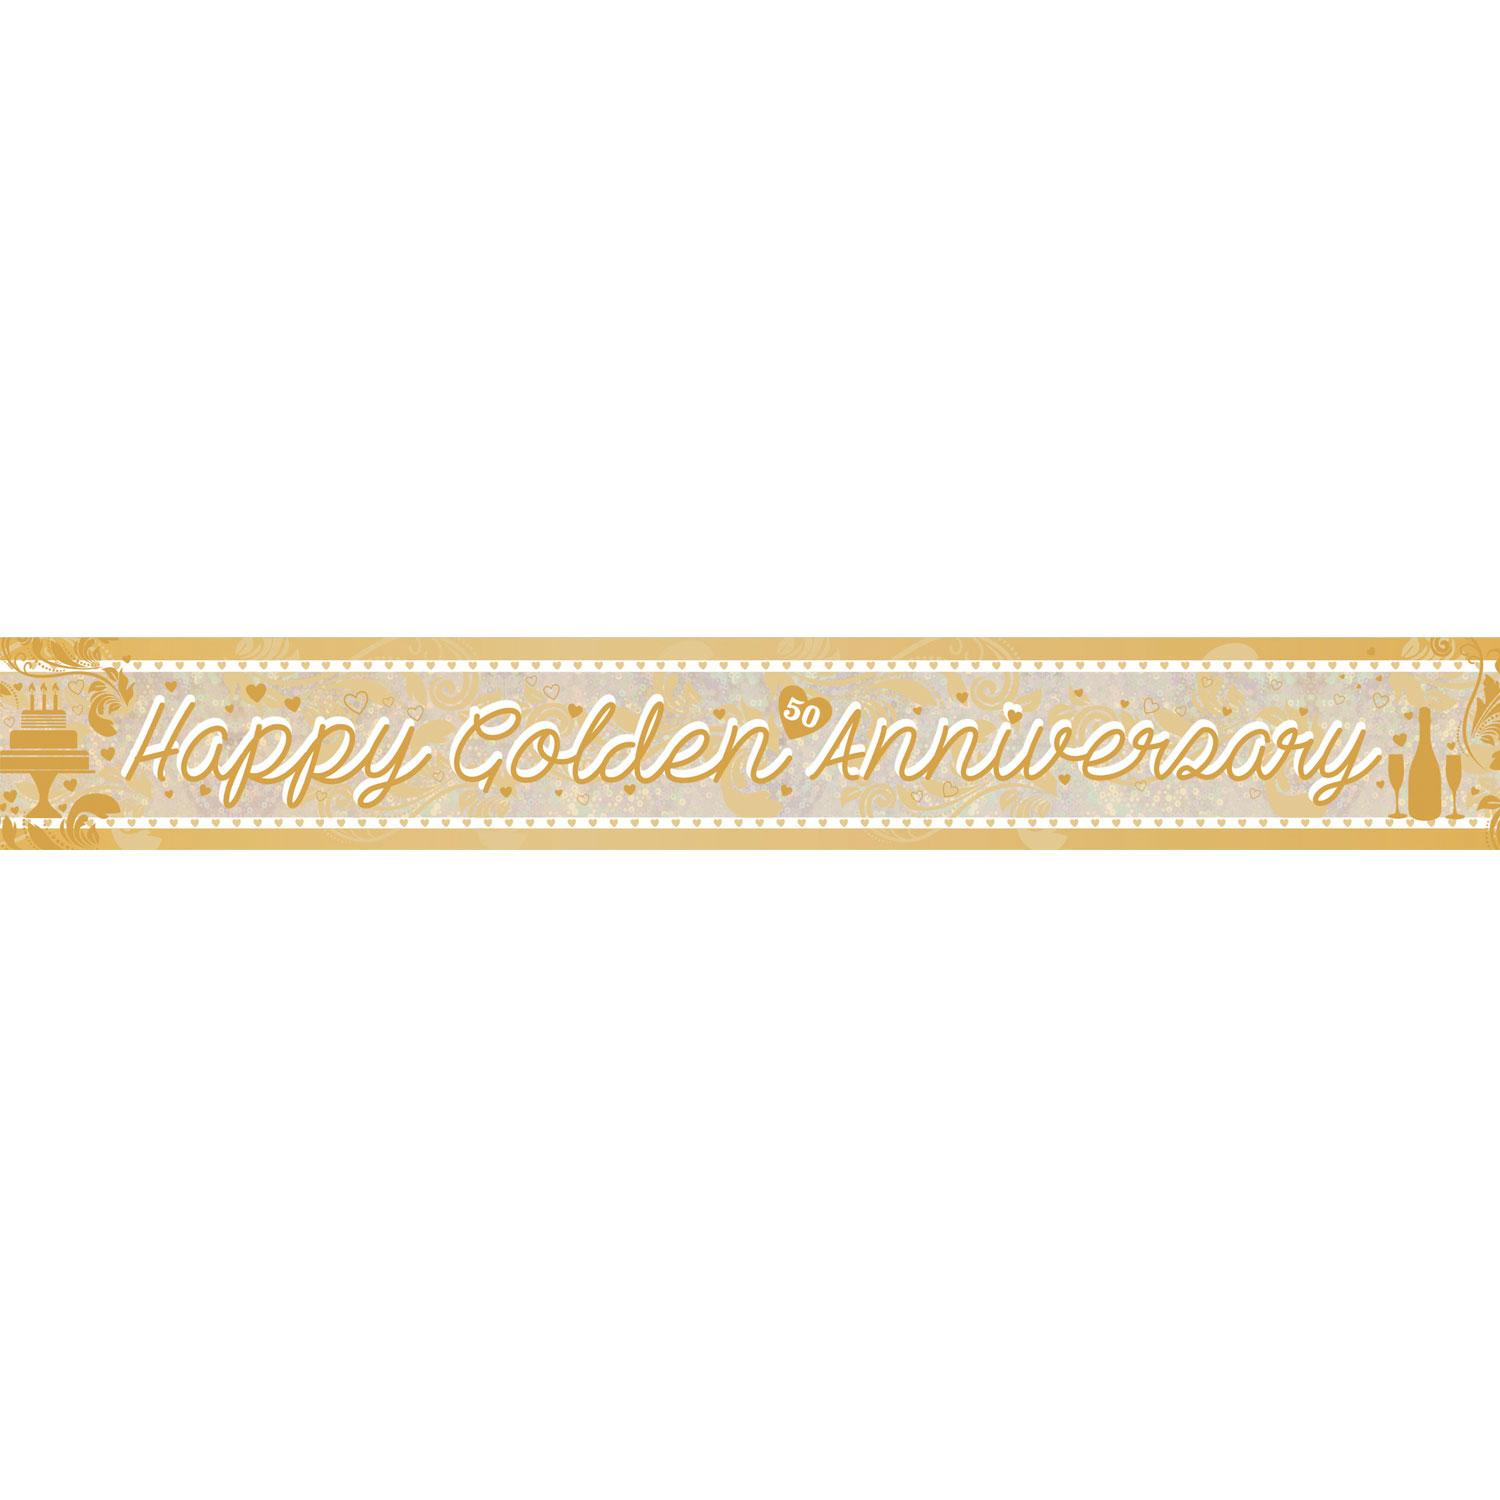 Holographic Banner Golden Anniversary